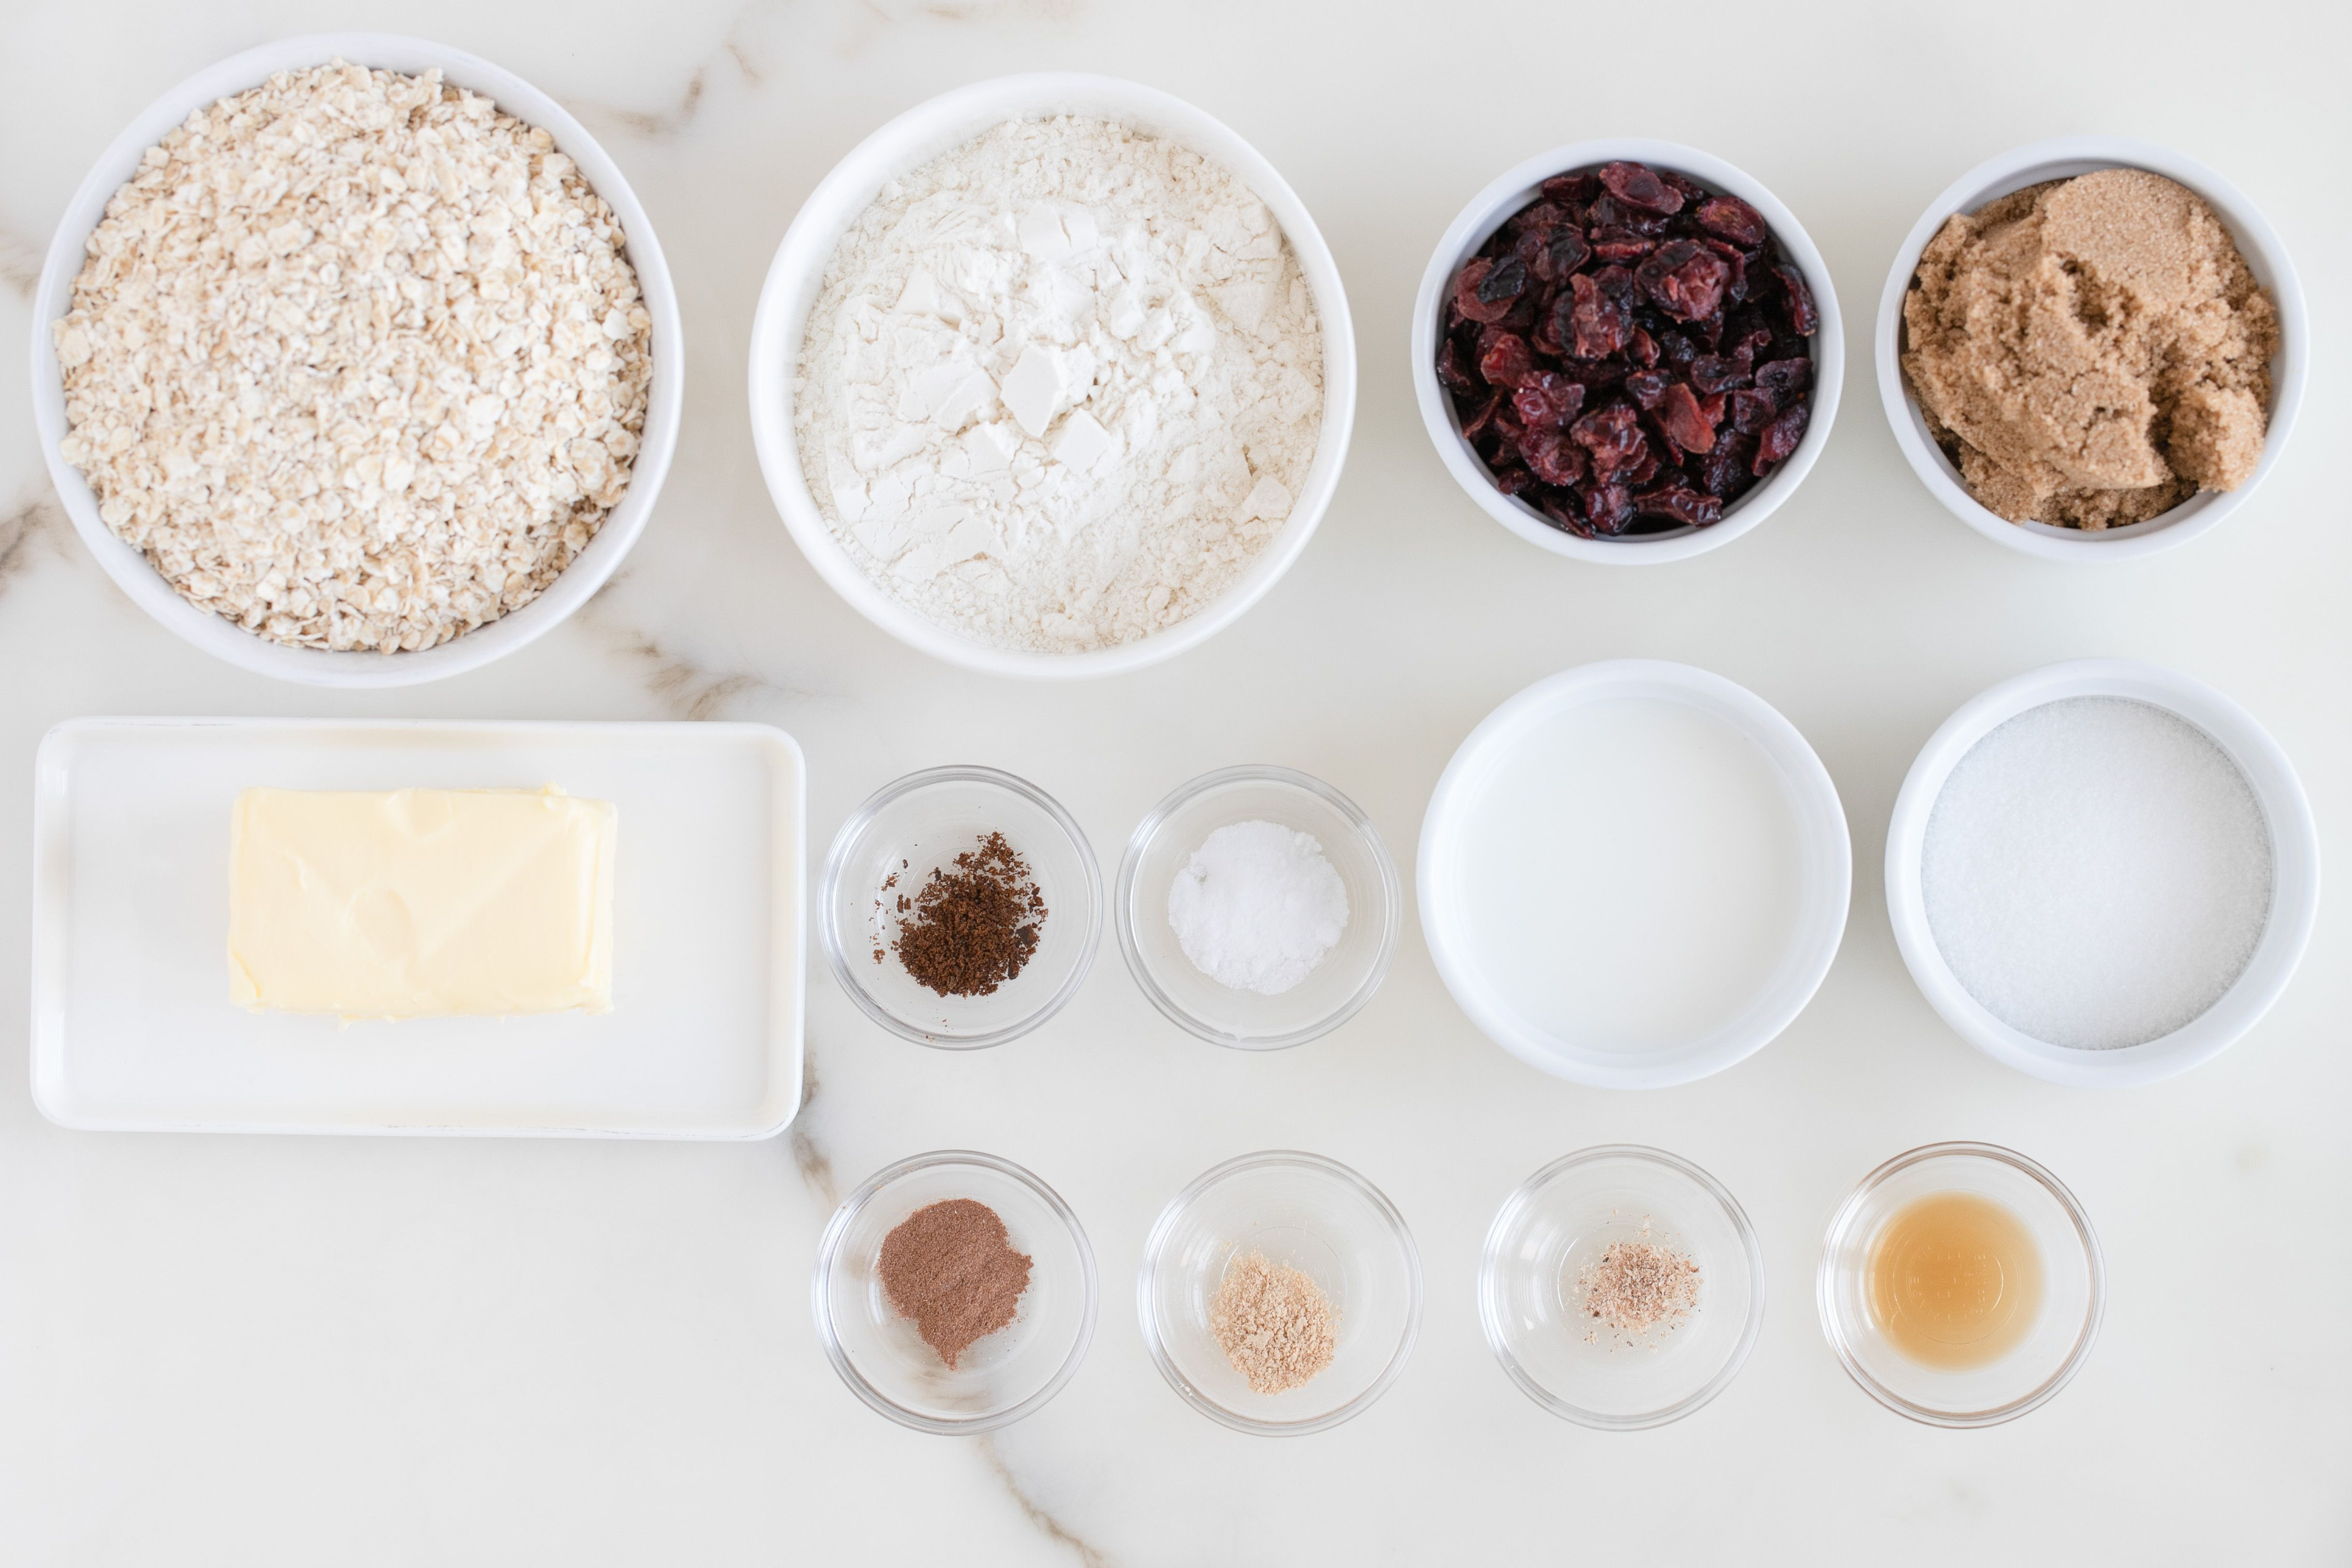 Ingredients for spiced vegan oatmeal